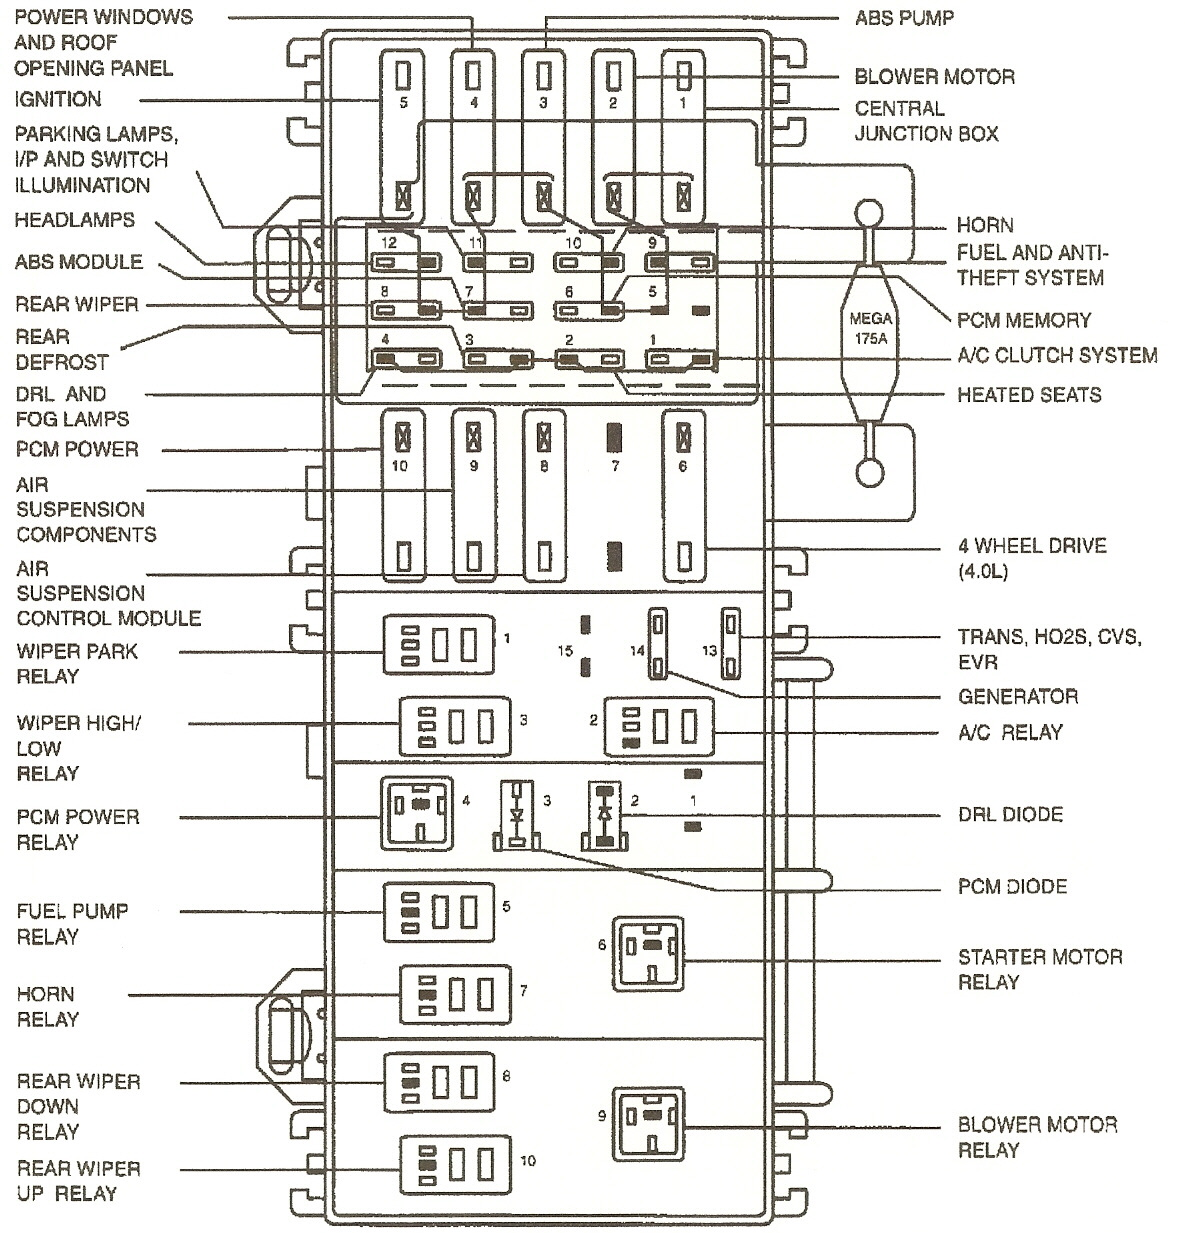 04 mercury mountaineer fuse box tacoma wire harness 04 Mercury Mountaineer 4 6 Fuse Box hello what size fuse should i use in 33 fuse my problem is 2011 03 04 025452 fuse box 4oaxq hello size fuse use 33 fuse problemhtml 04 mercury mountaineer 1998 Mercury Mountaineer Fuse Diagram